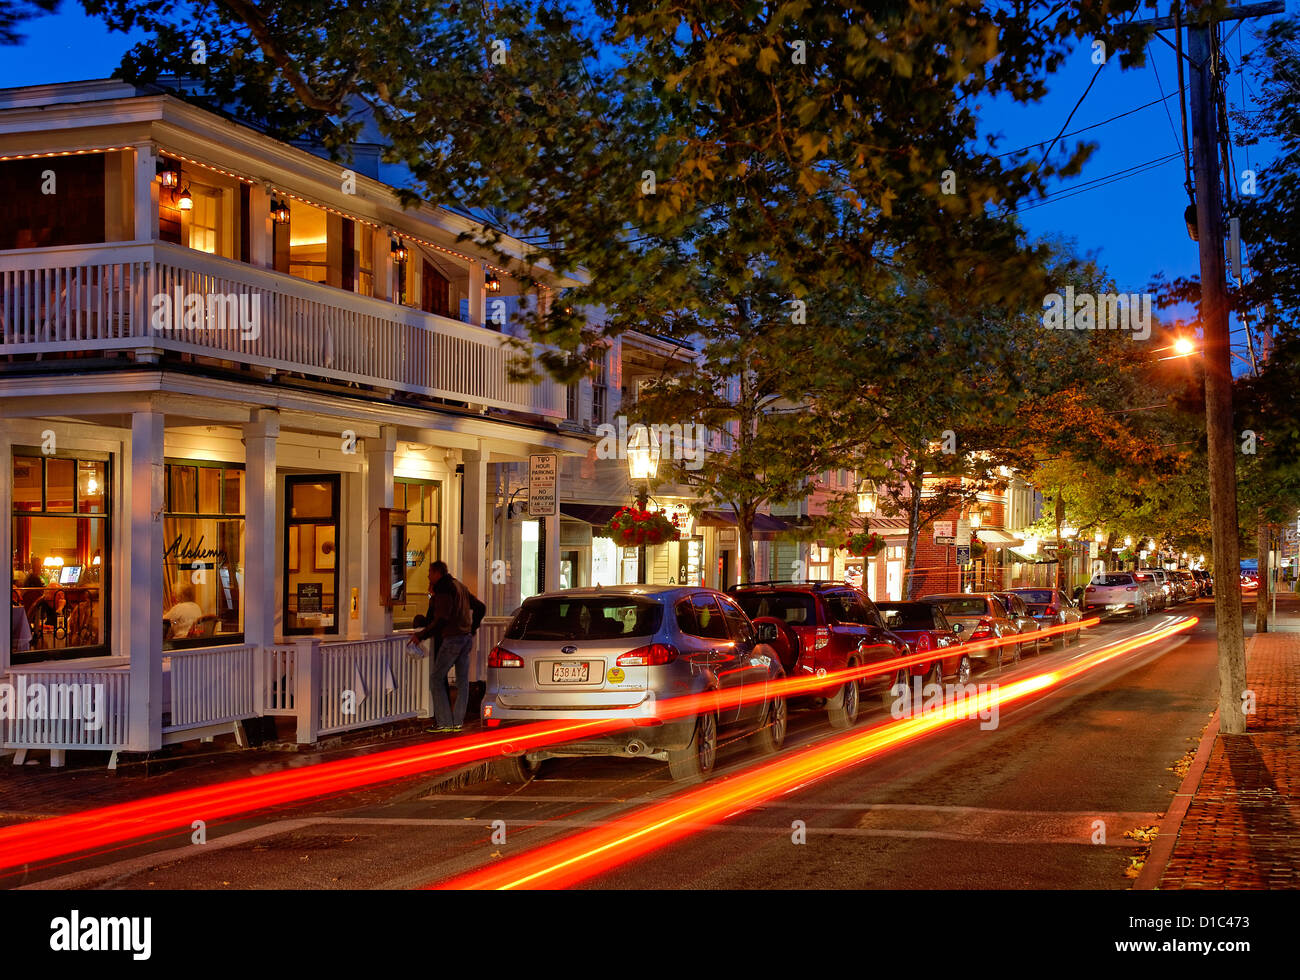 Edgartown nightlife, Martha's Vineyard, Massachusetts, USA - Stock Image